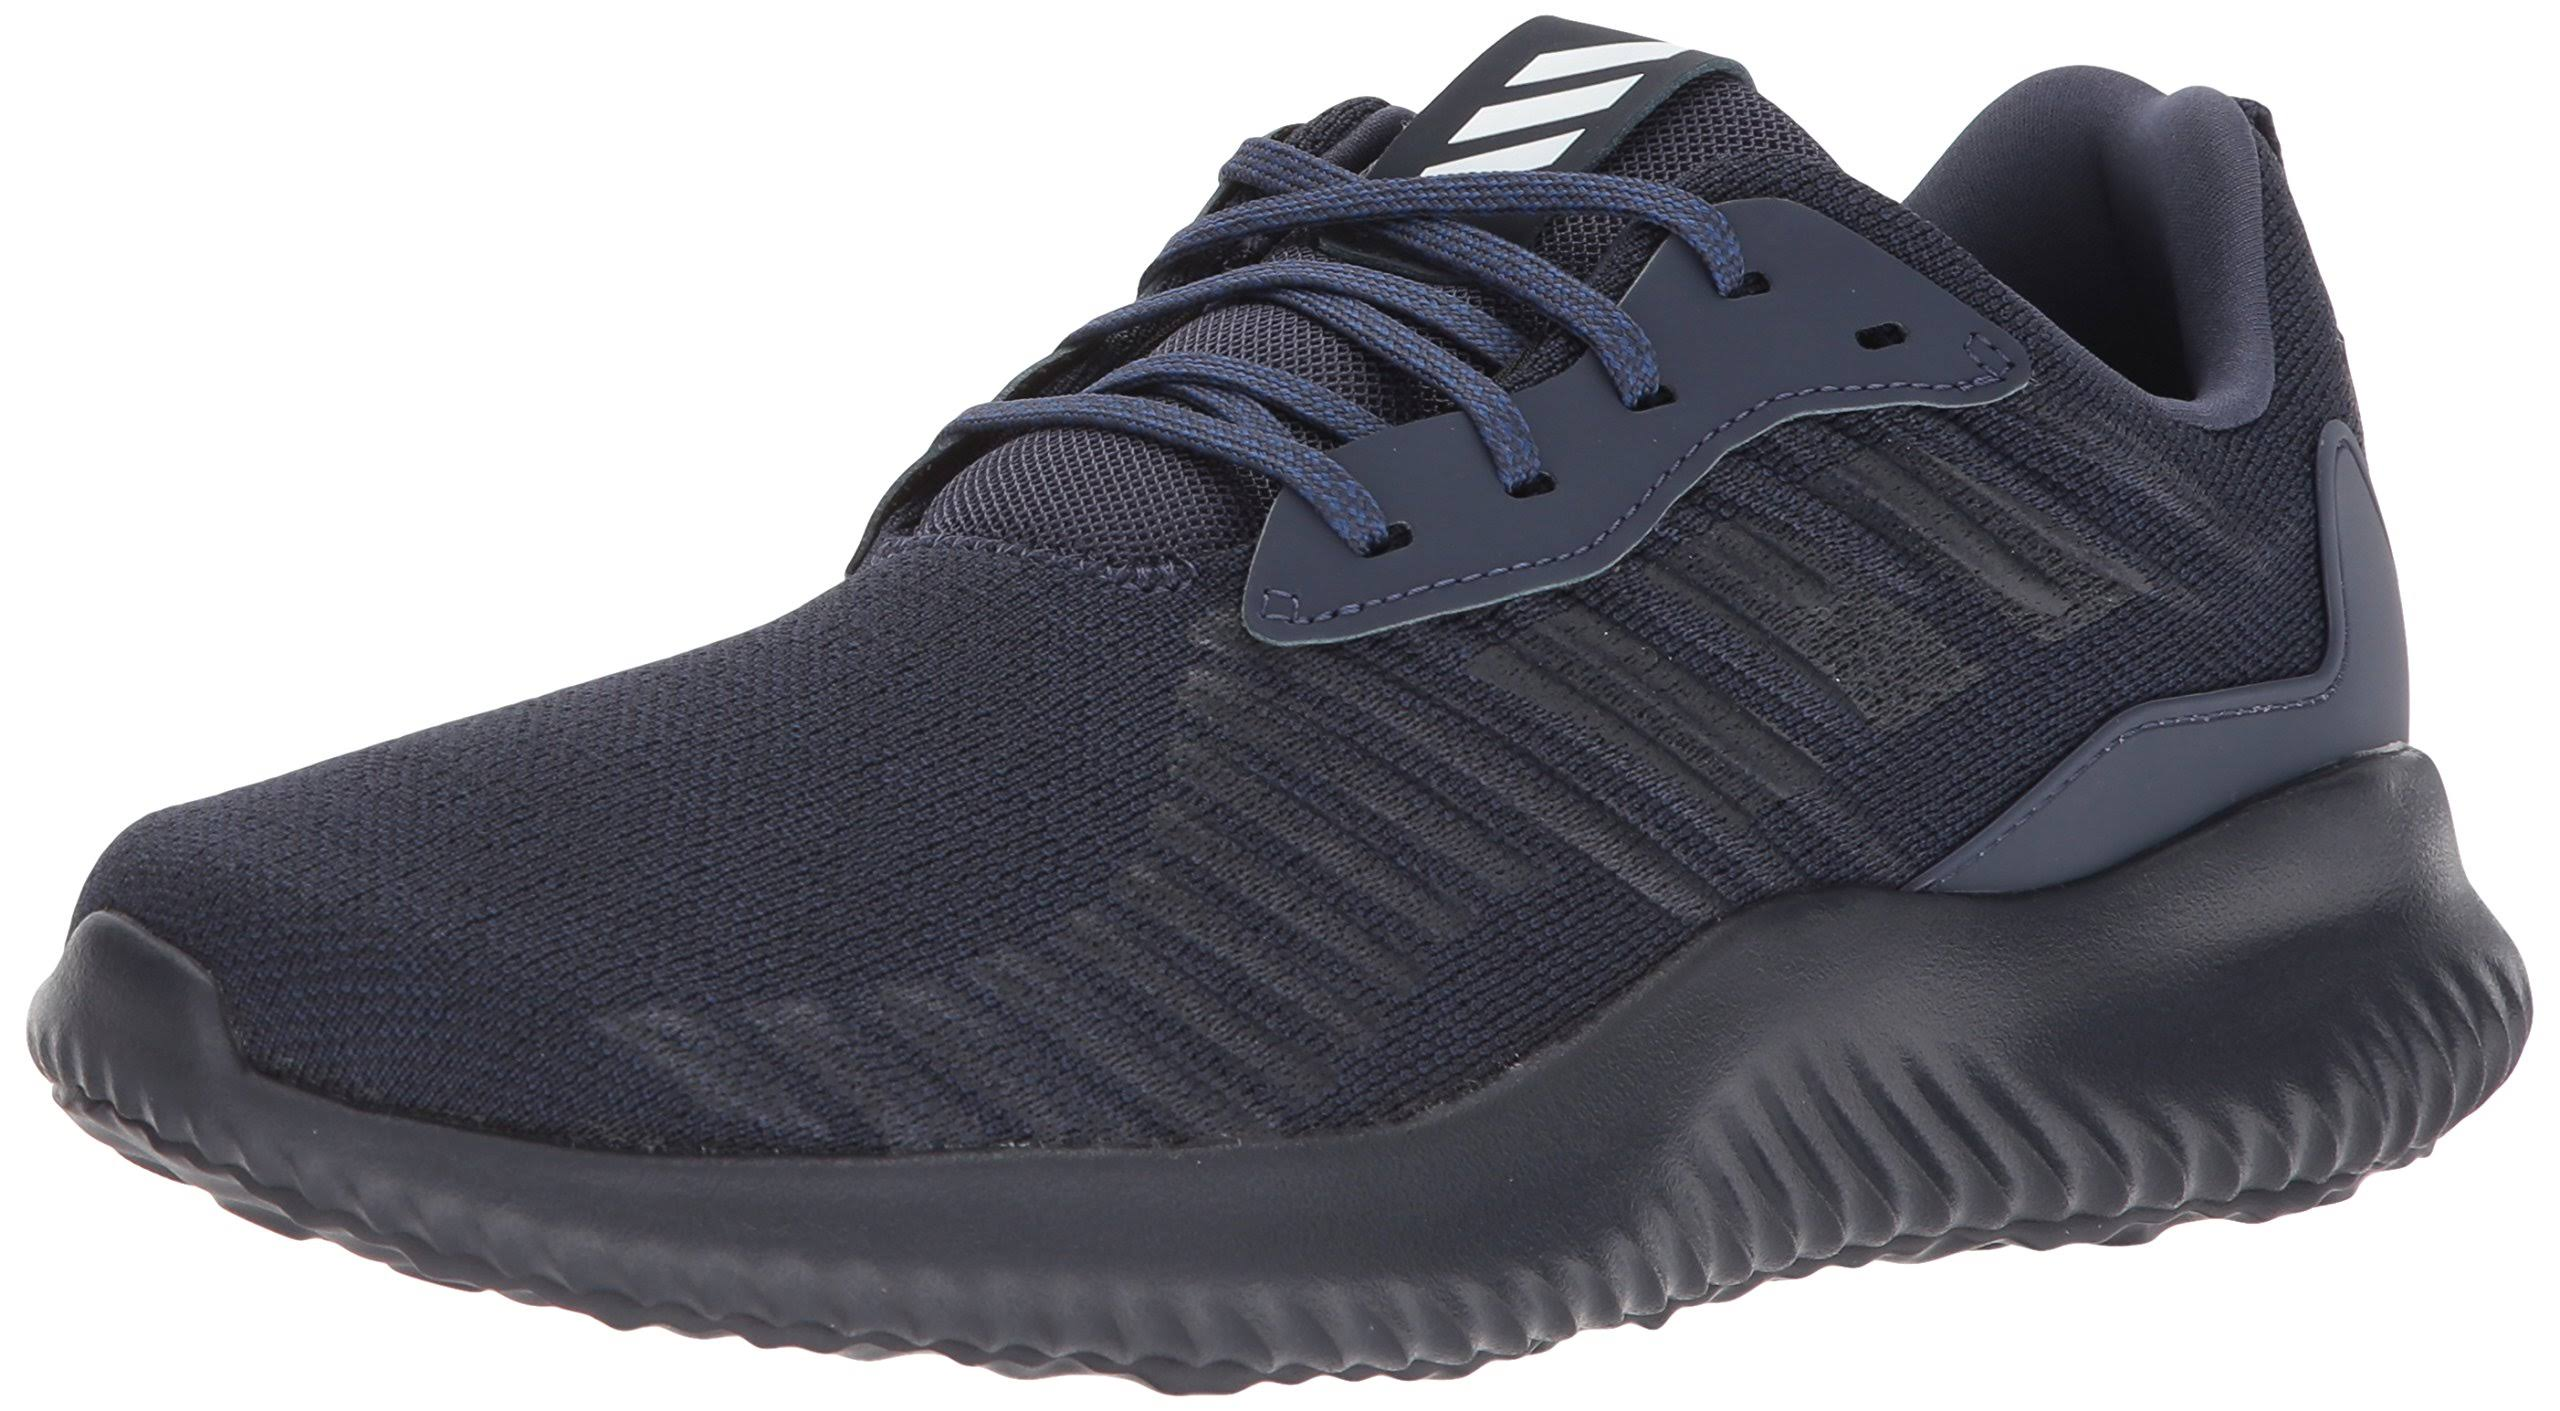 M Adidas Biegania Men's Do Rc Blue Buty Alphabounce Trace p1wtr1xZ